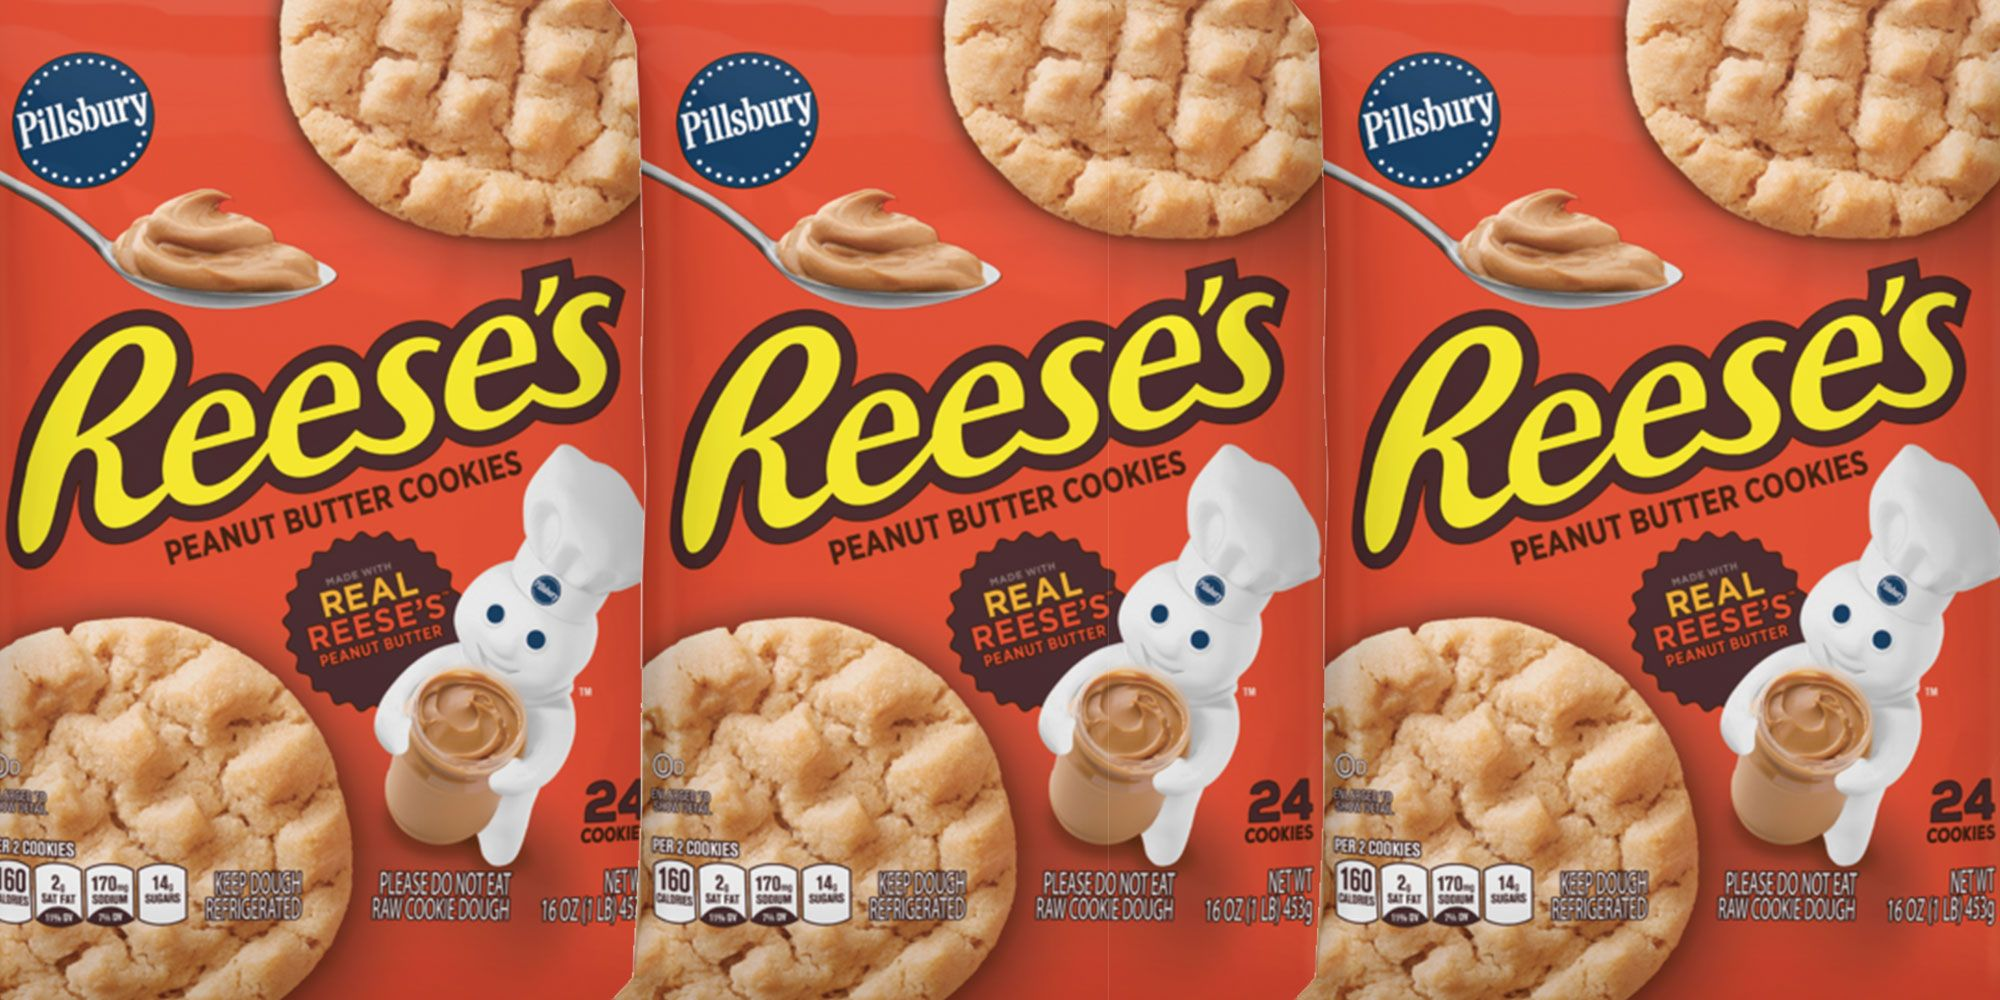 Pillsbury Makes Reese's Peanut Butter Cookies, And They're Perfect For The People Who LOVE Peanut Butter